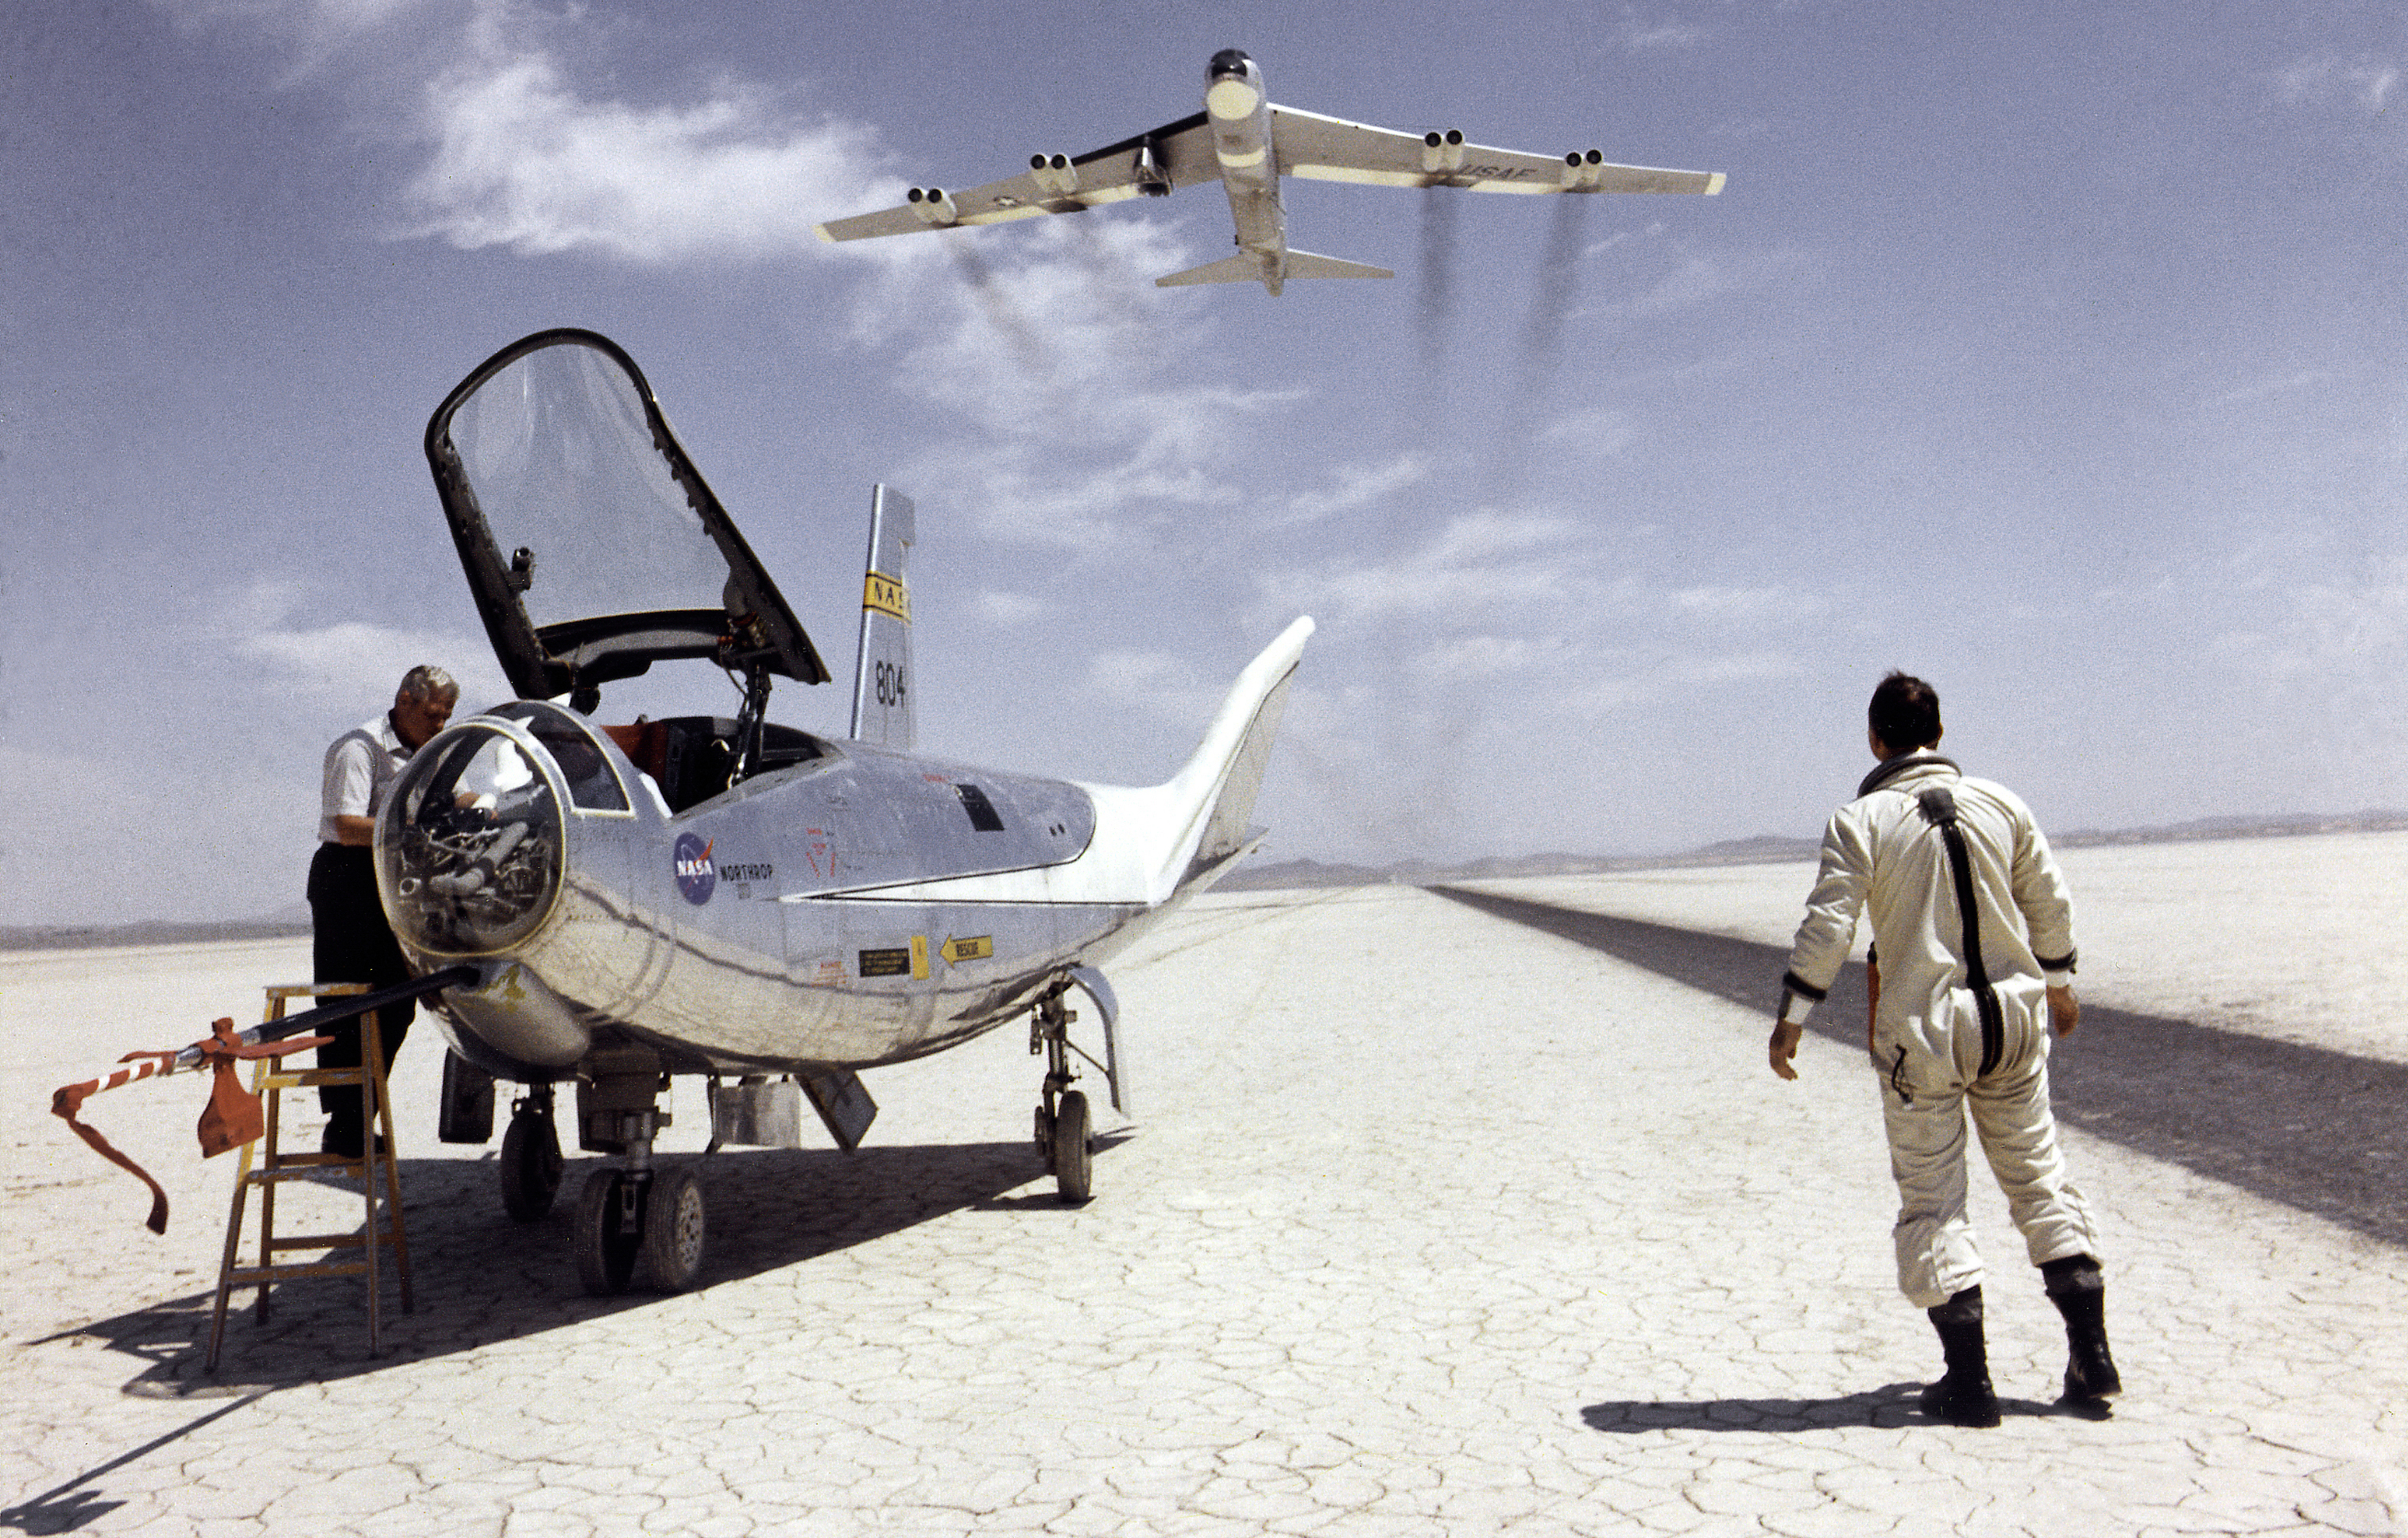 NASA Dryden Flight Research Pilots Photo Collection